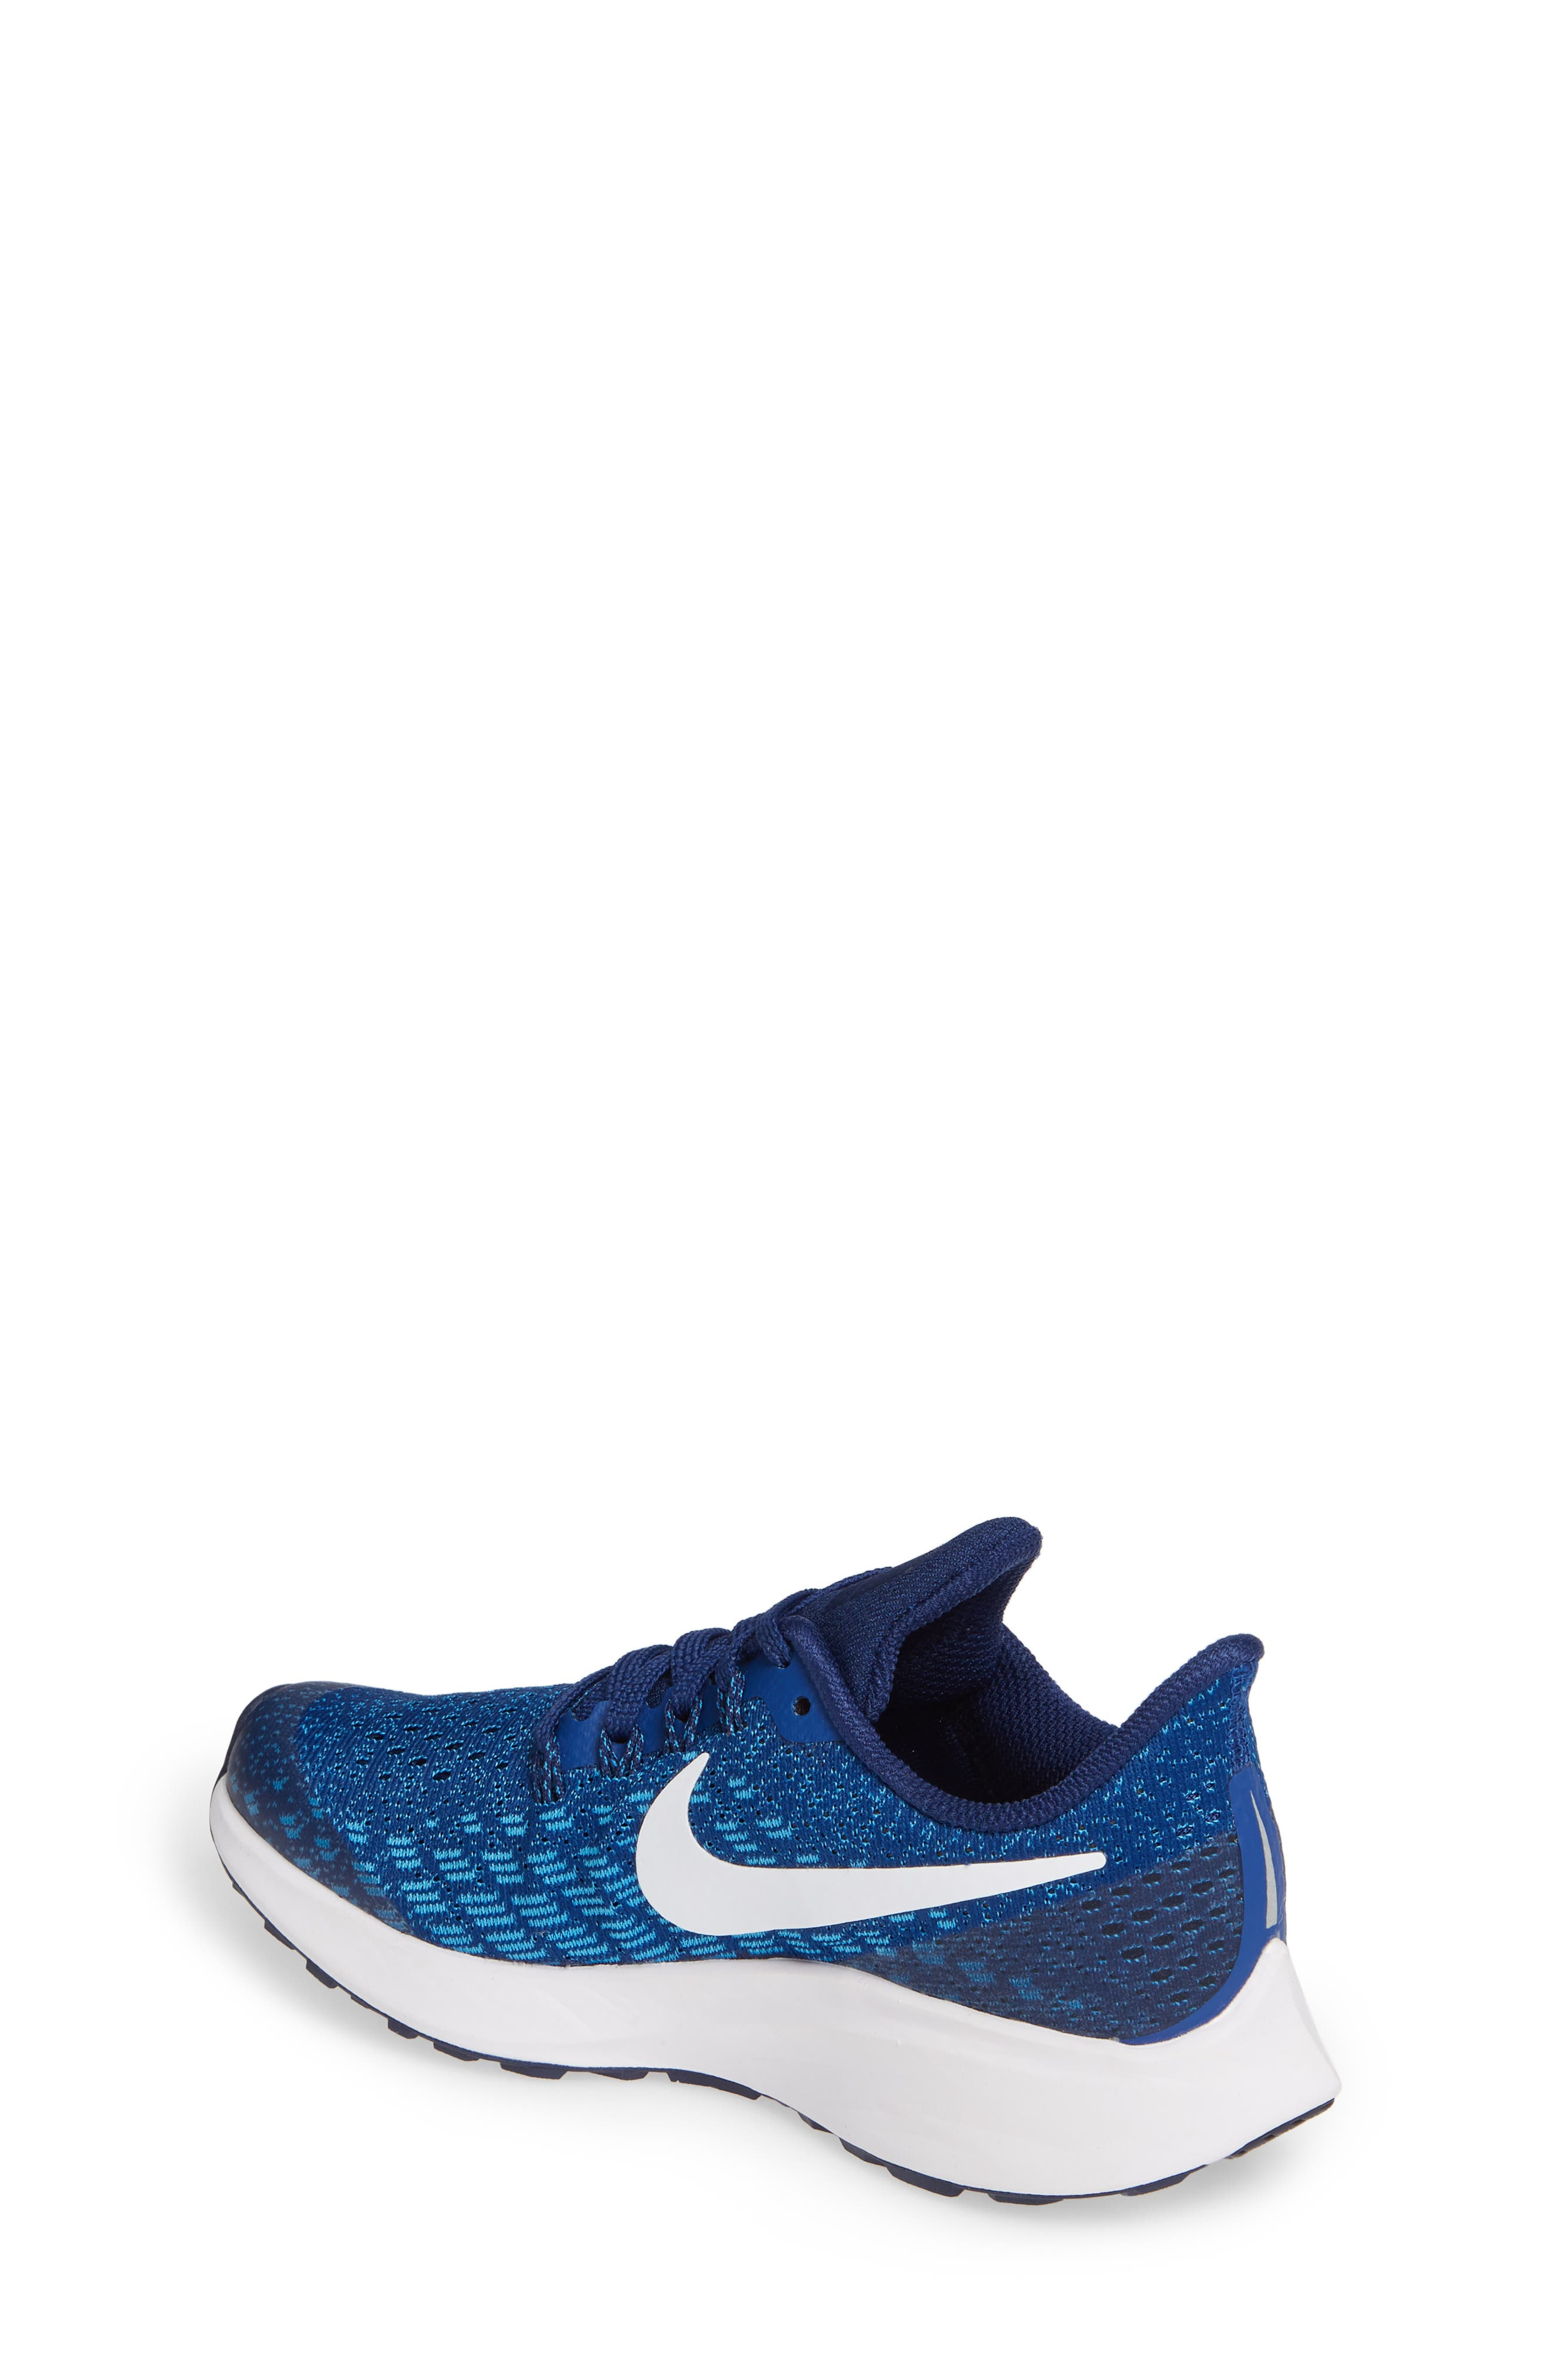 NIKE, Air Zoom Pegasus 35 Sneaker, Alternate thumbnail 2, color, INDIGO FORCE/ WHITE-BLUE-BLUE